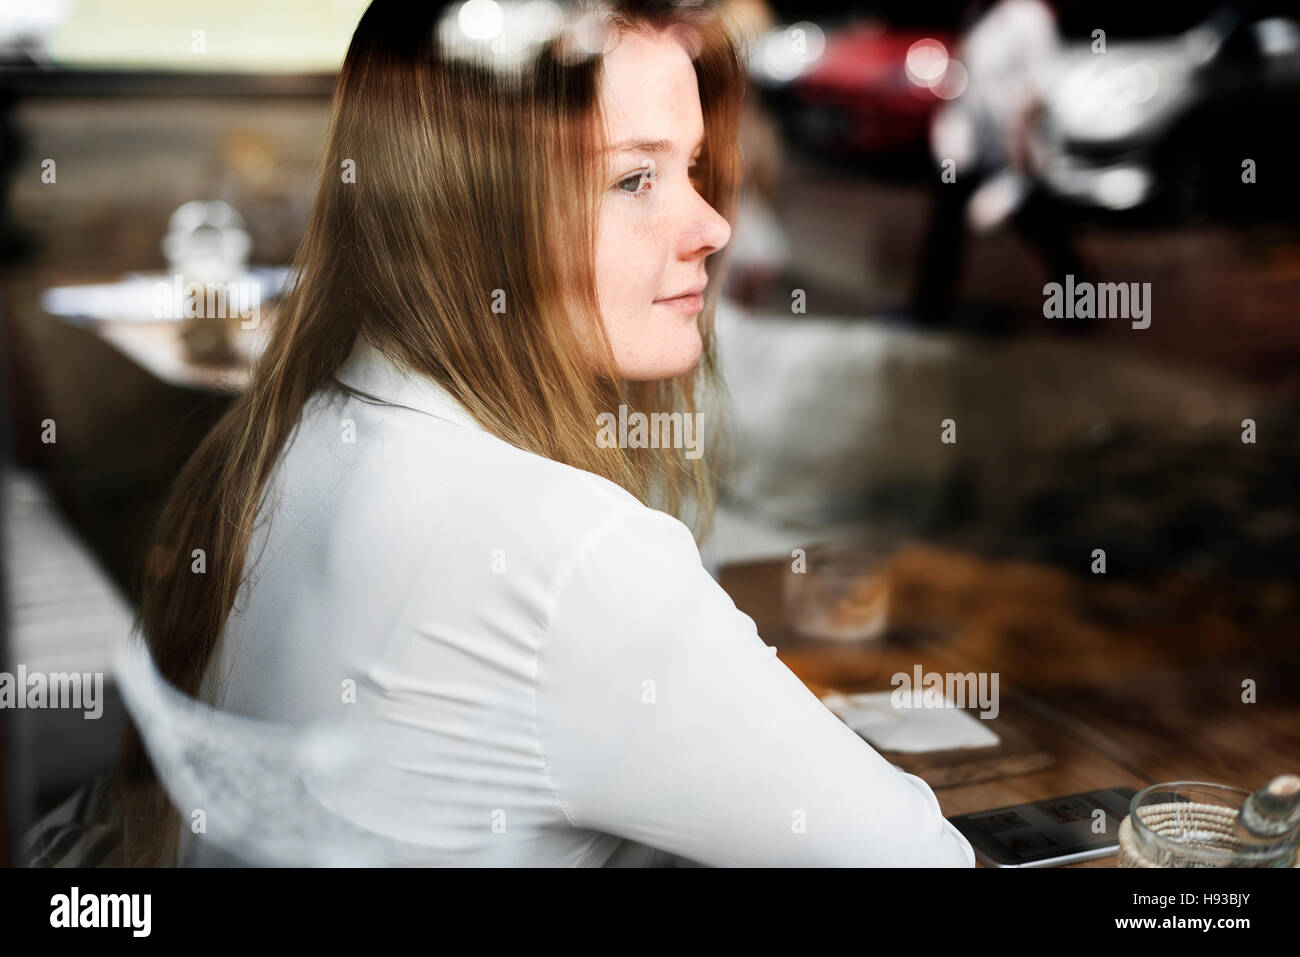 Young Girl Cafe Relaxation Contemplation Leisure Concept - Stock Image